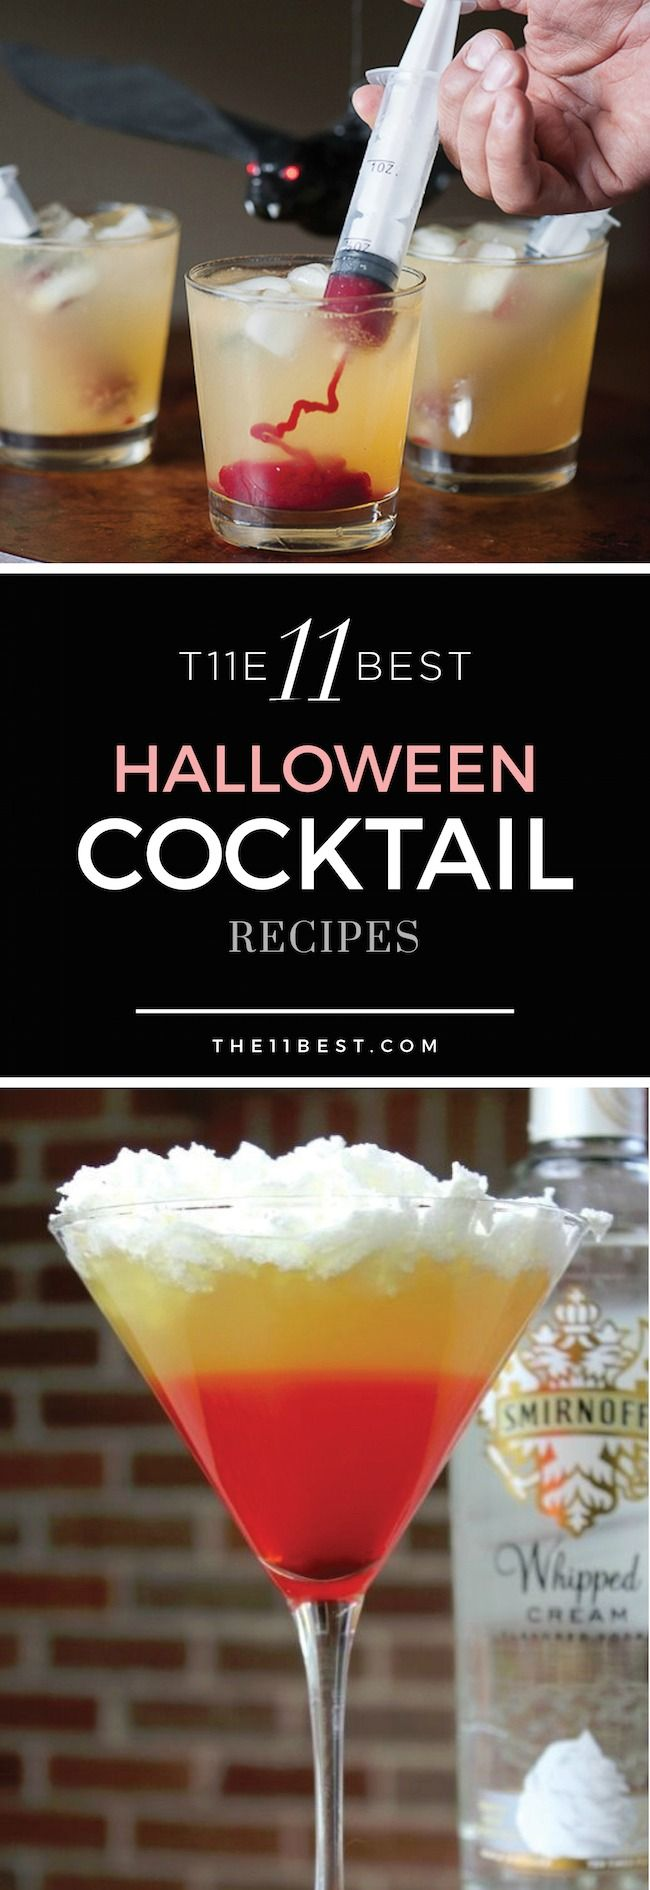 The 11 Best Halloween Cocktail Recipe Ideas